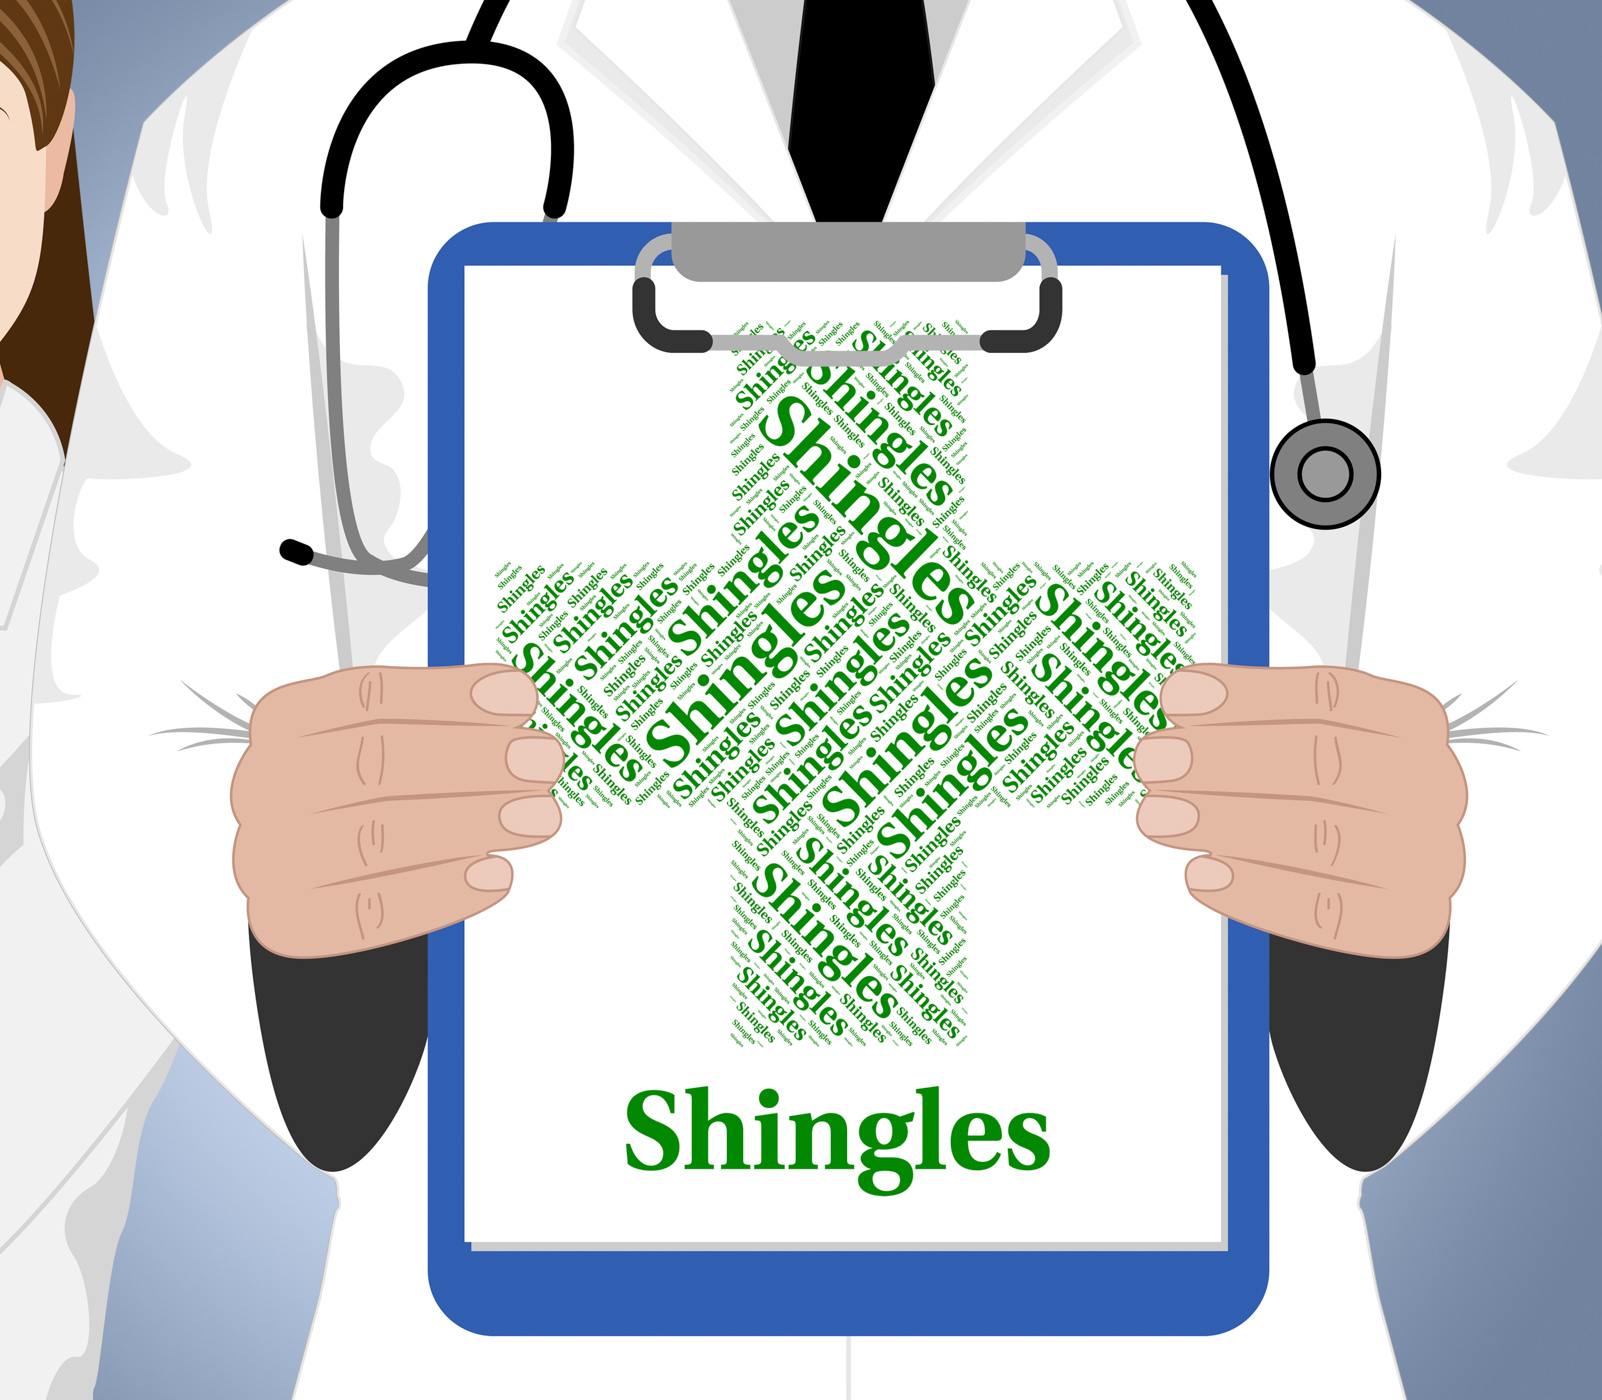 Shingles word shows viral disease and afflictions photo